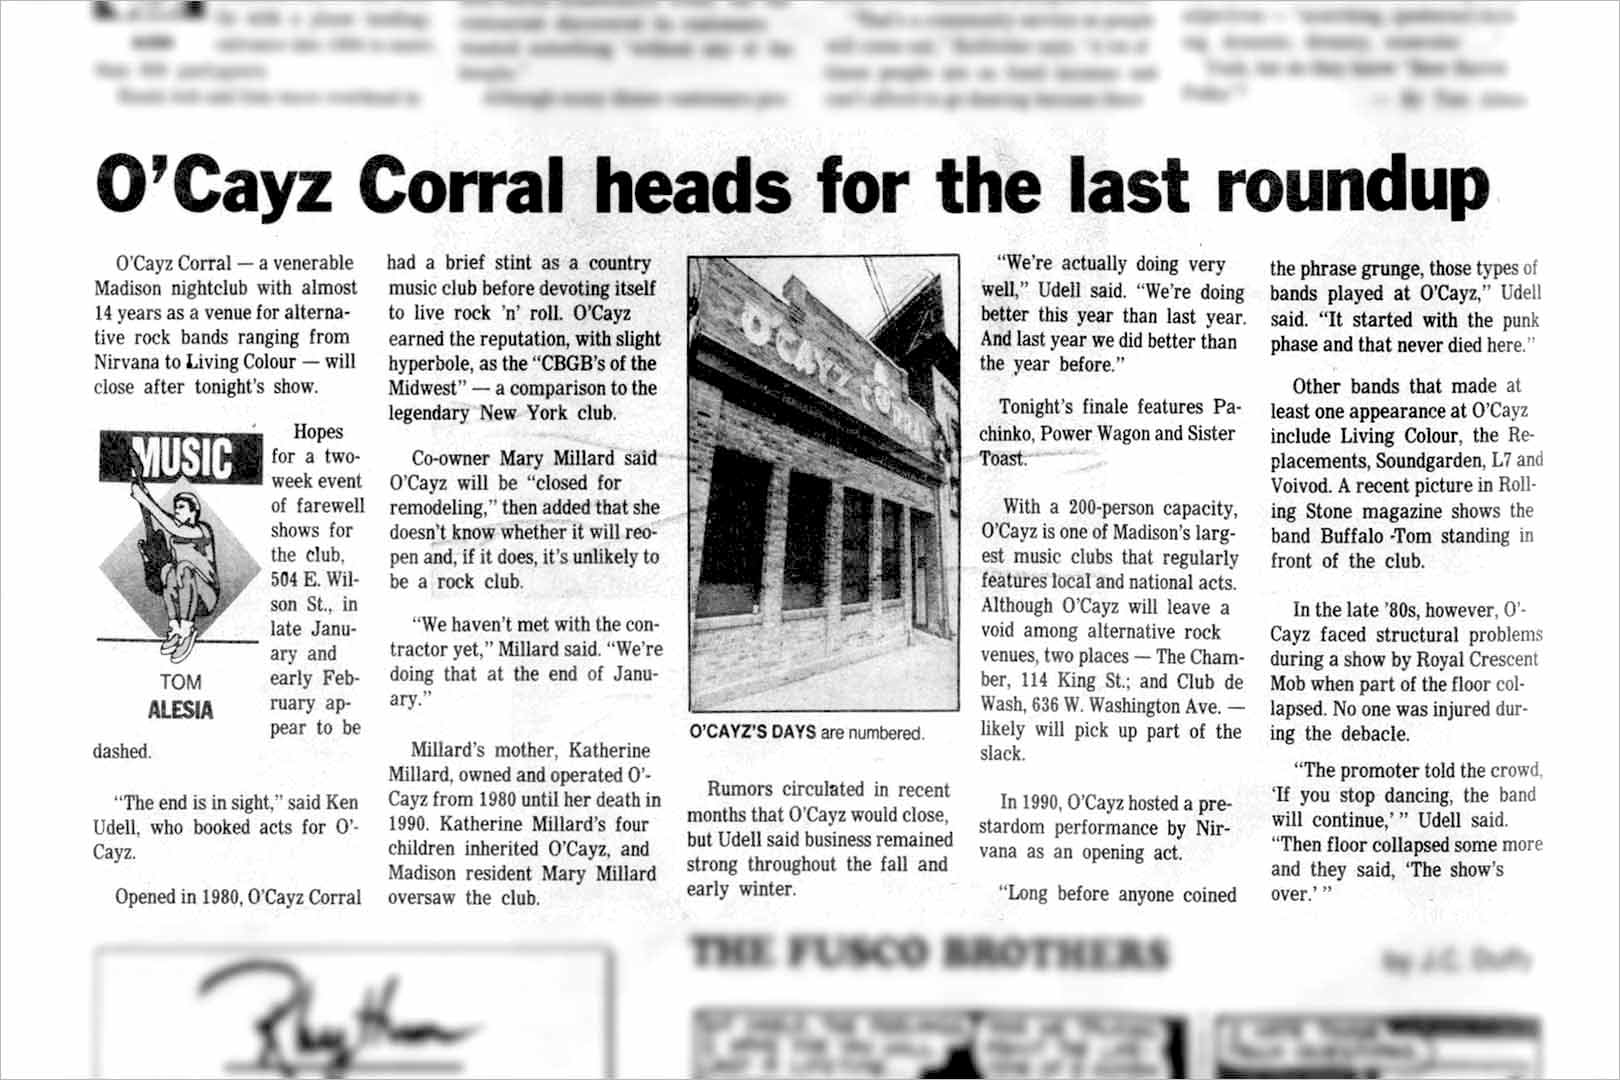 O'Cayz Corral heads for the last roundup